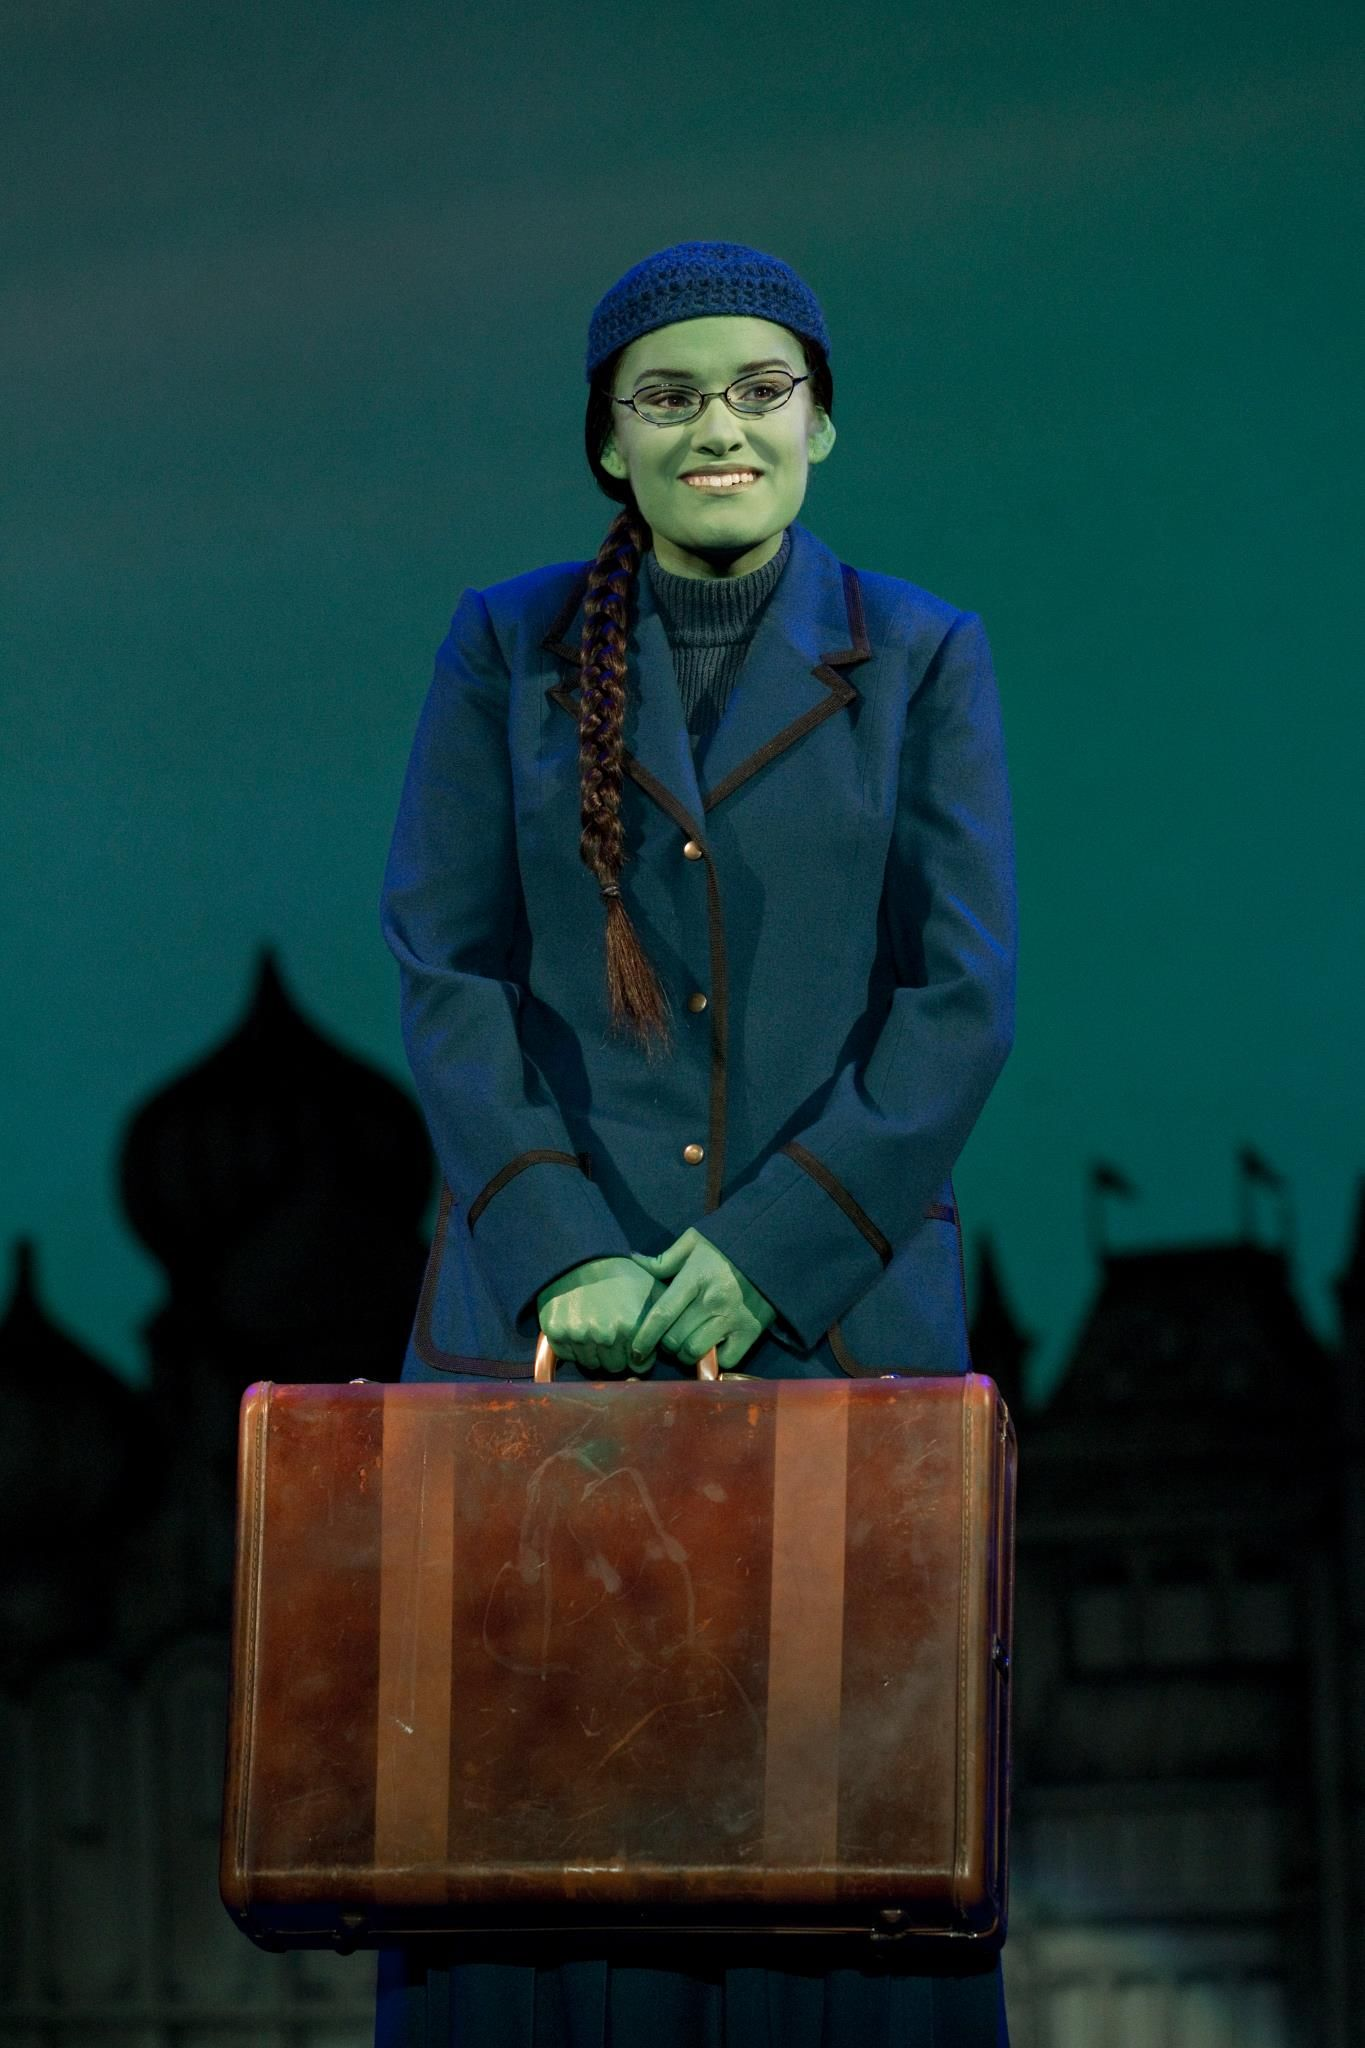 Elphaba Ballroom Costume from Wicked the Musical | Wicked Costume ...